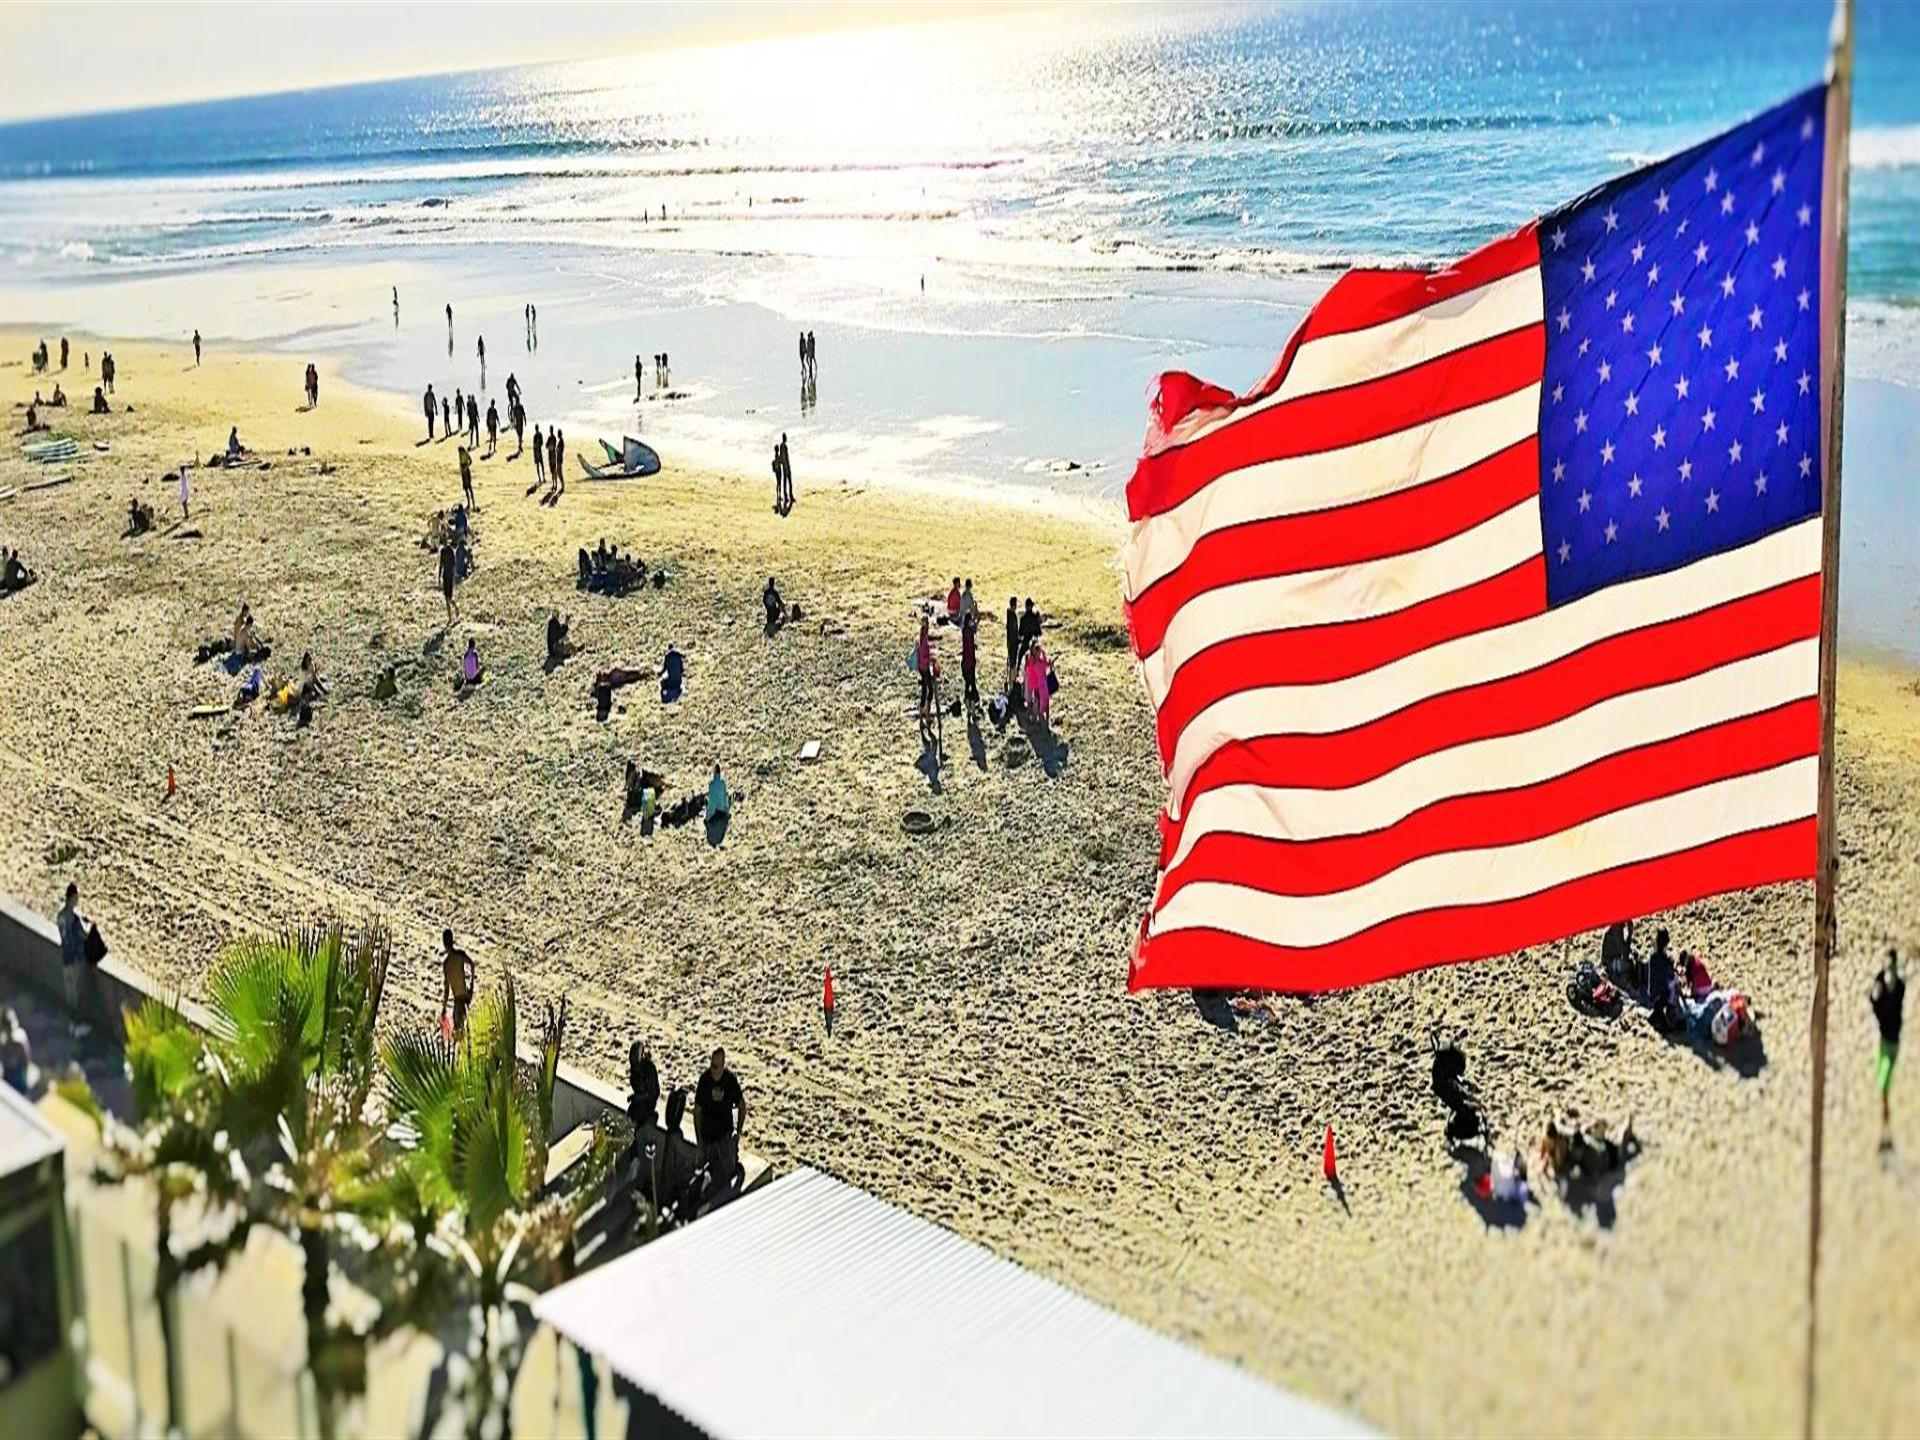 american flag waving infront of beach full of people